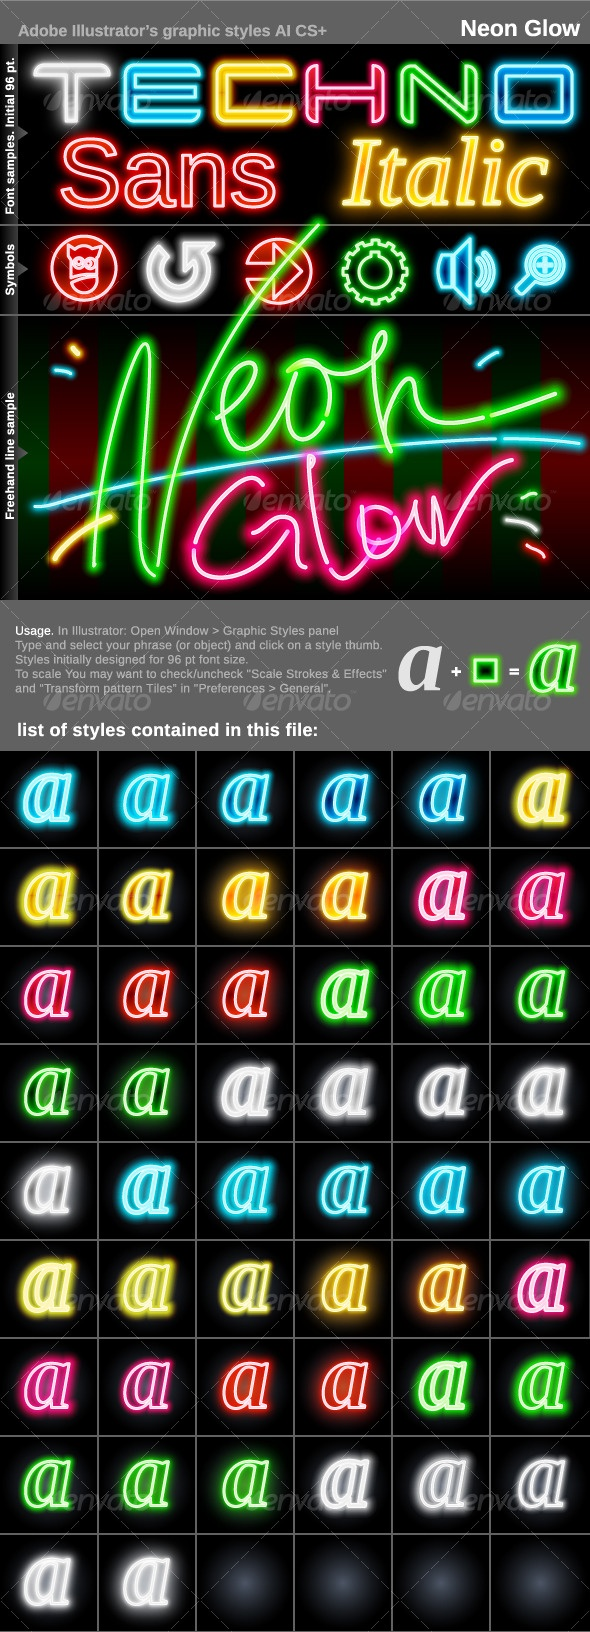 Illustrator Graphic Styles. Neon GlowAdobe Illustration, Fat Jackie, Illustration Resources, Matthew Stuff, Graphics Style, Graphicriver Items, Glow, Illustration Graphics, Illustration Tutorials